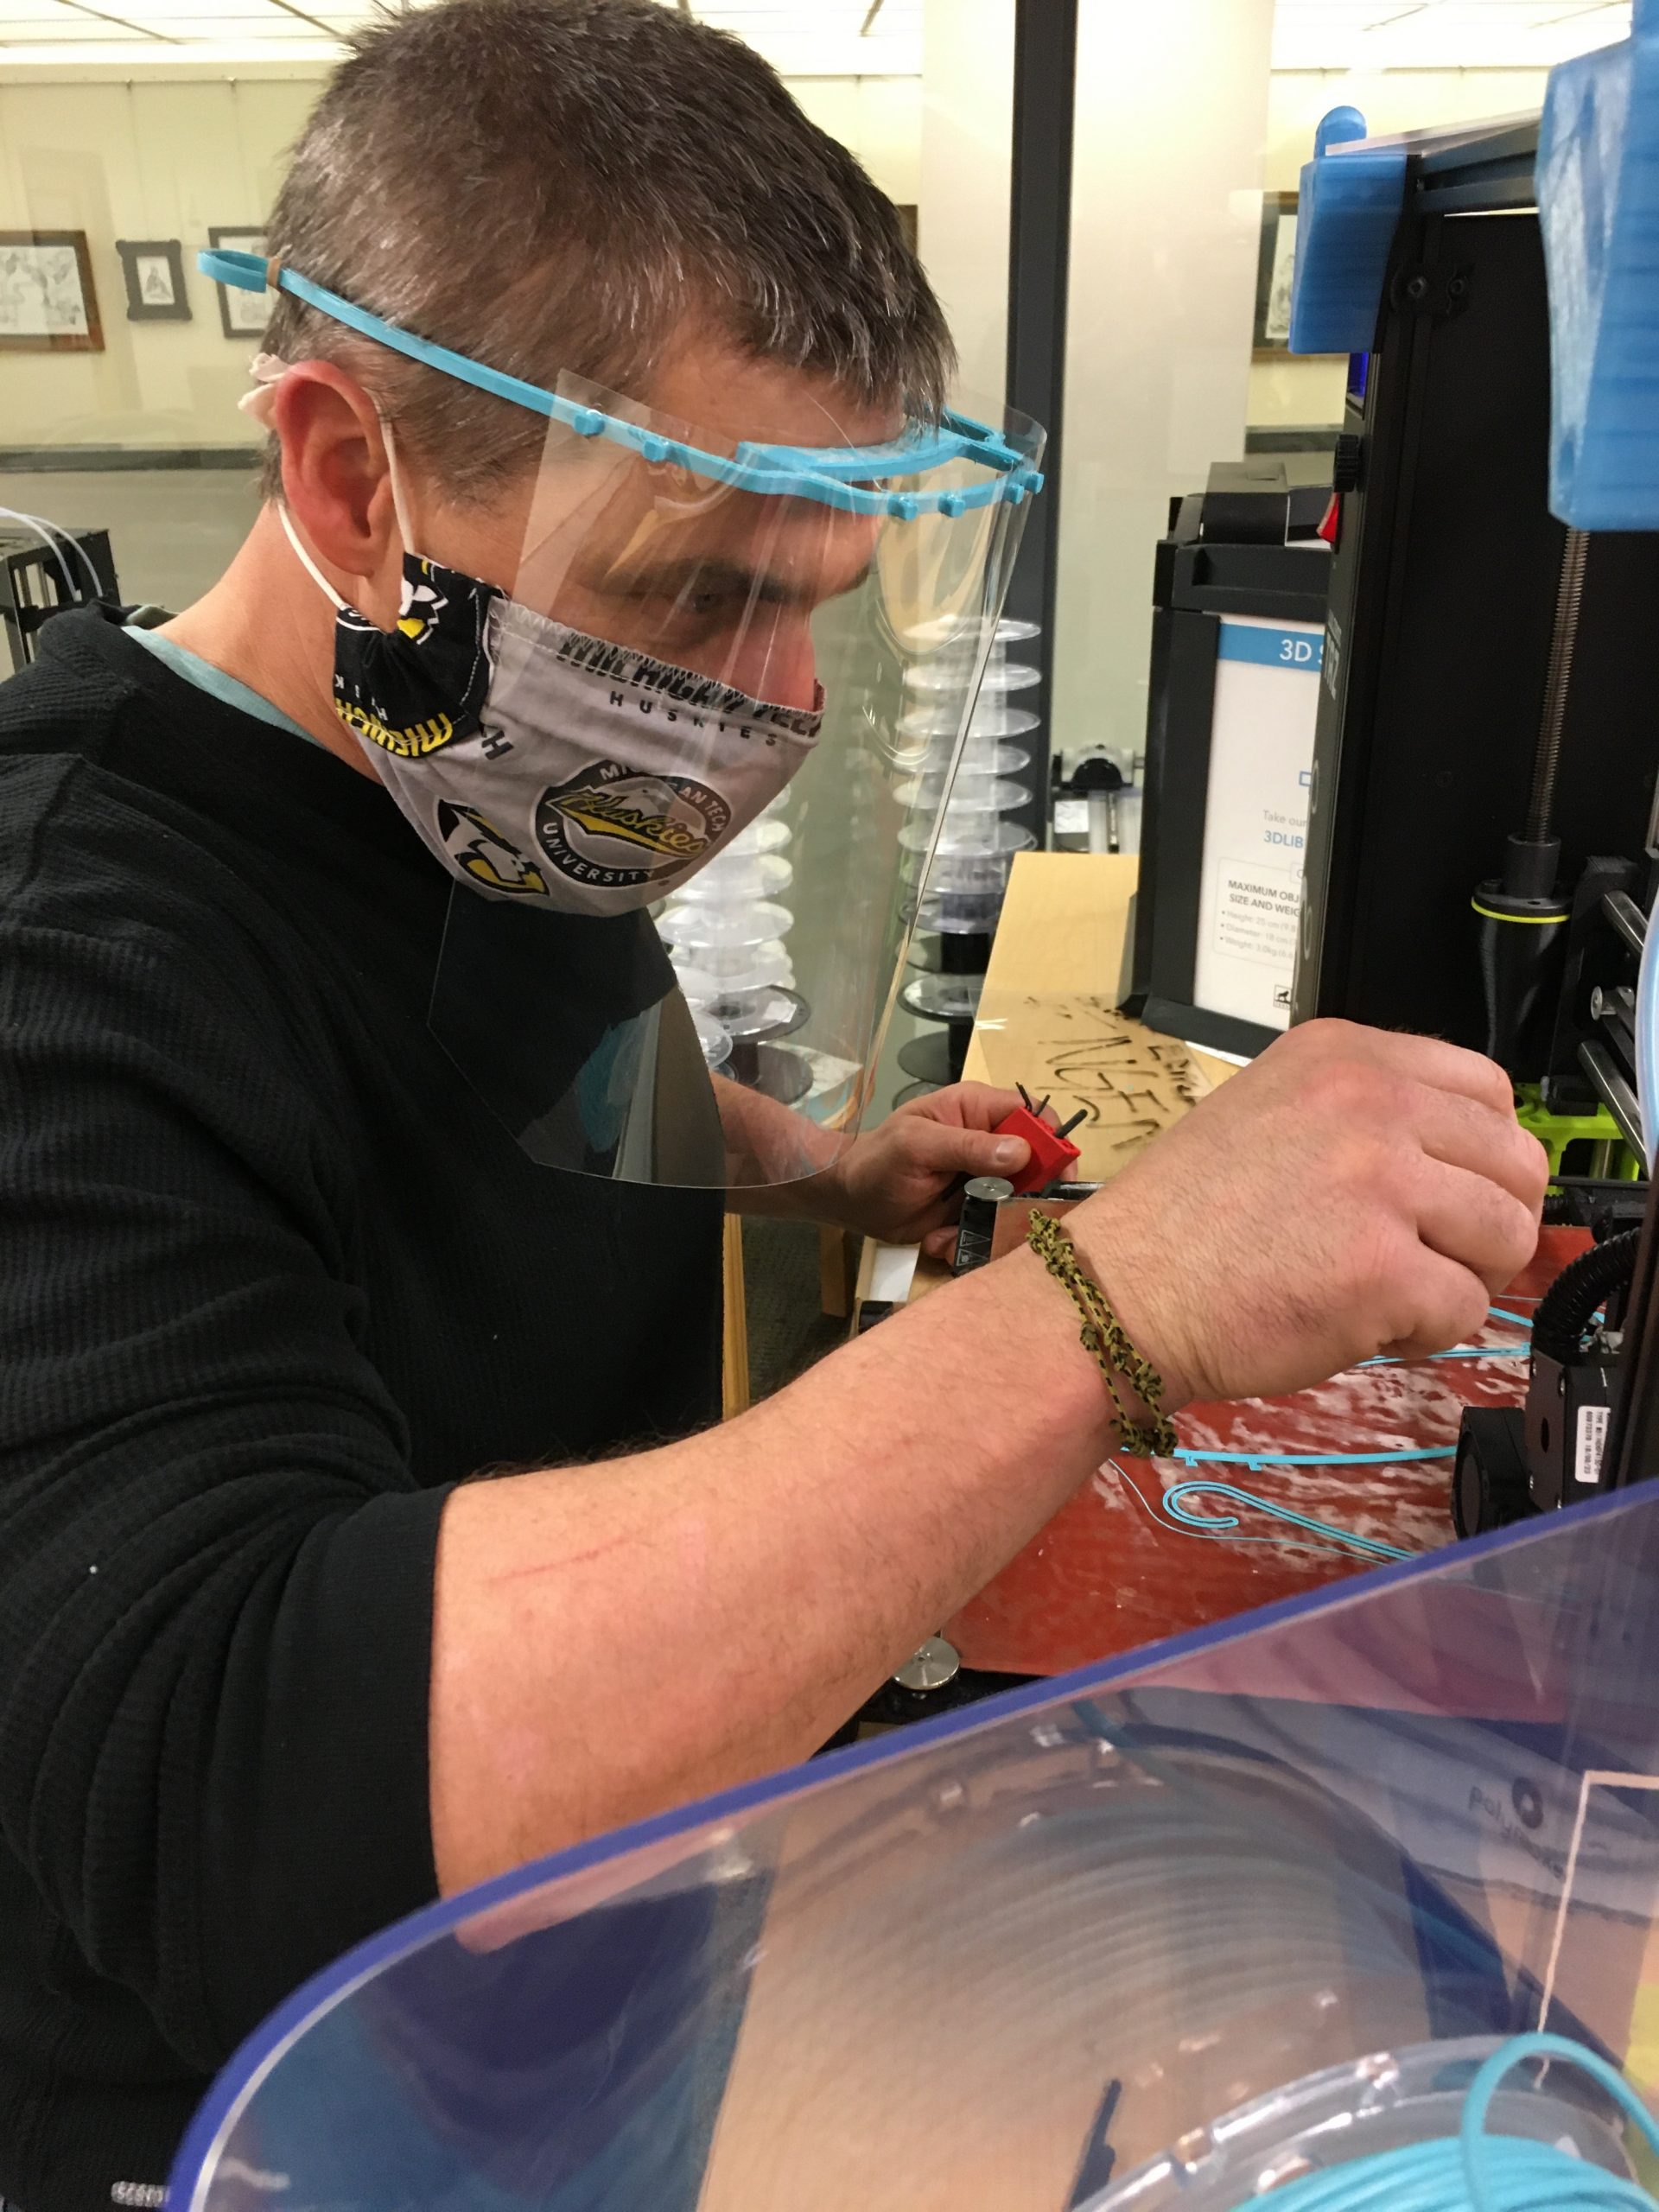 A man wearing a Michigan Tech Huskies face mask and a plastic shield working at a 3D printer in a library.